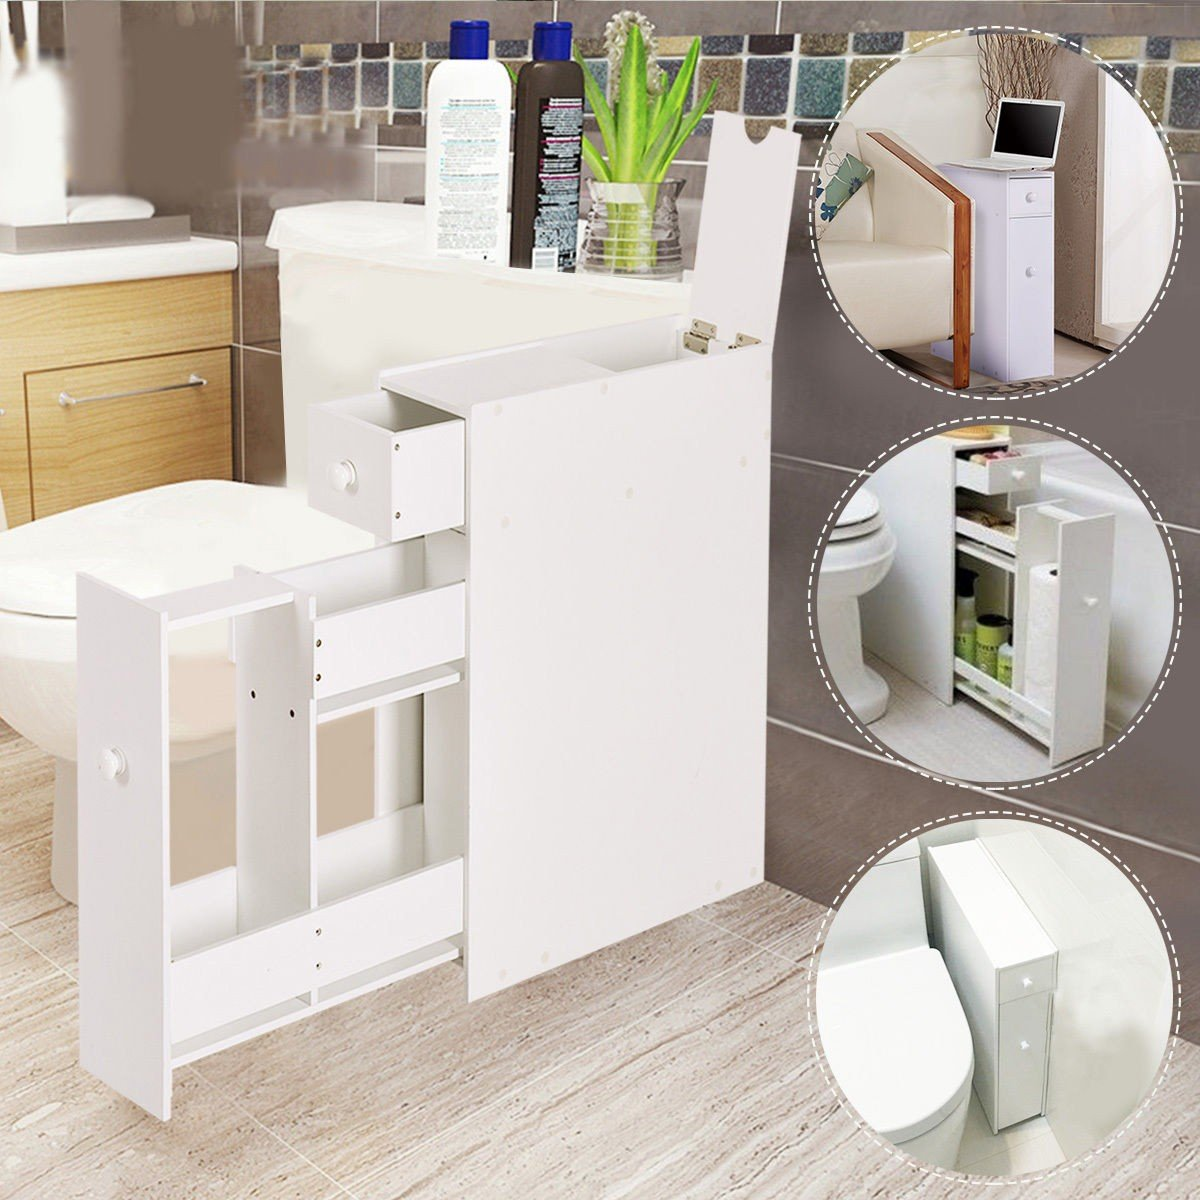 White Bathroom Cabinet Space Saver Storage Organizer – By Choice ...